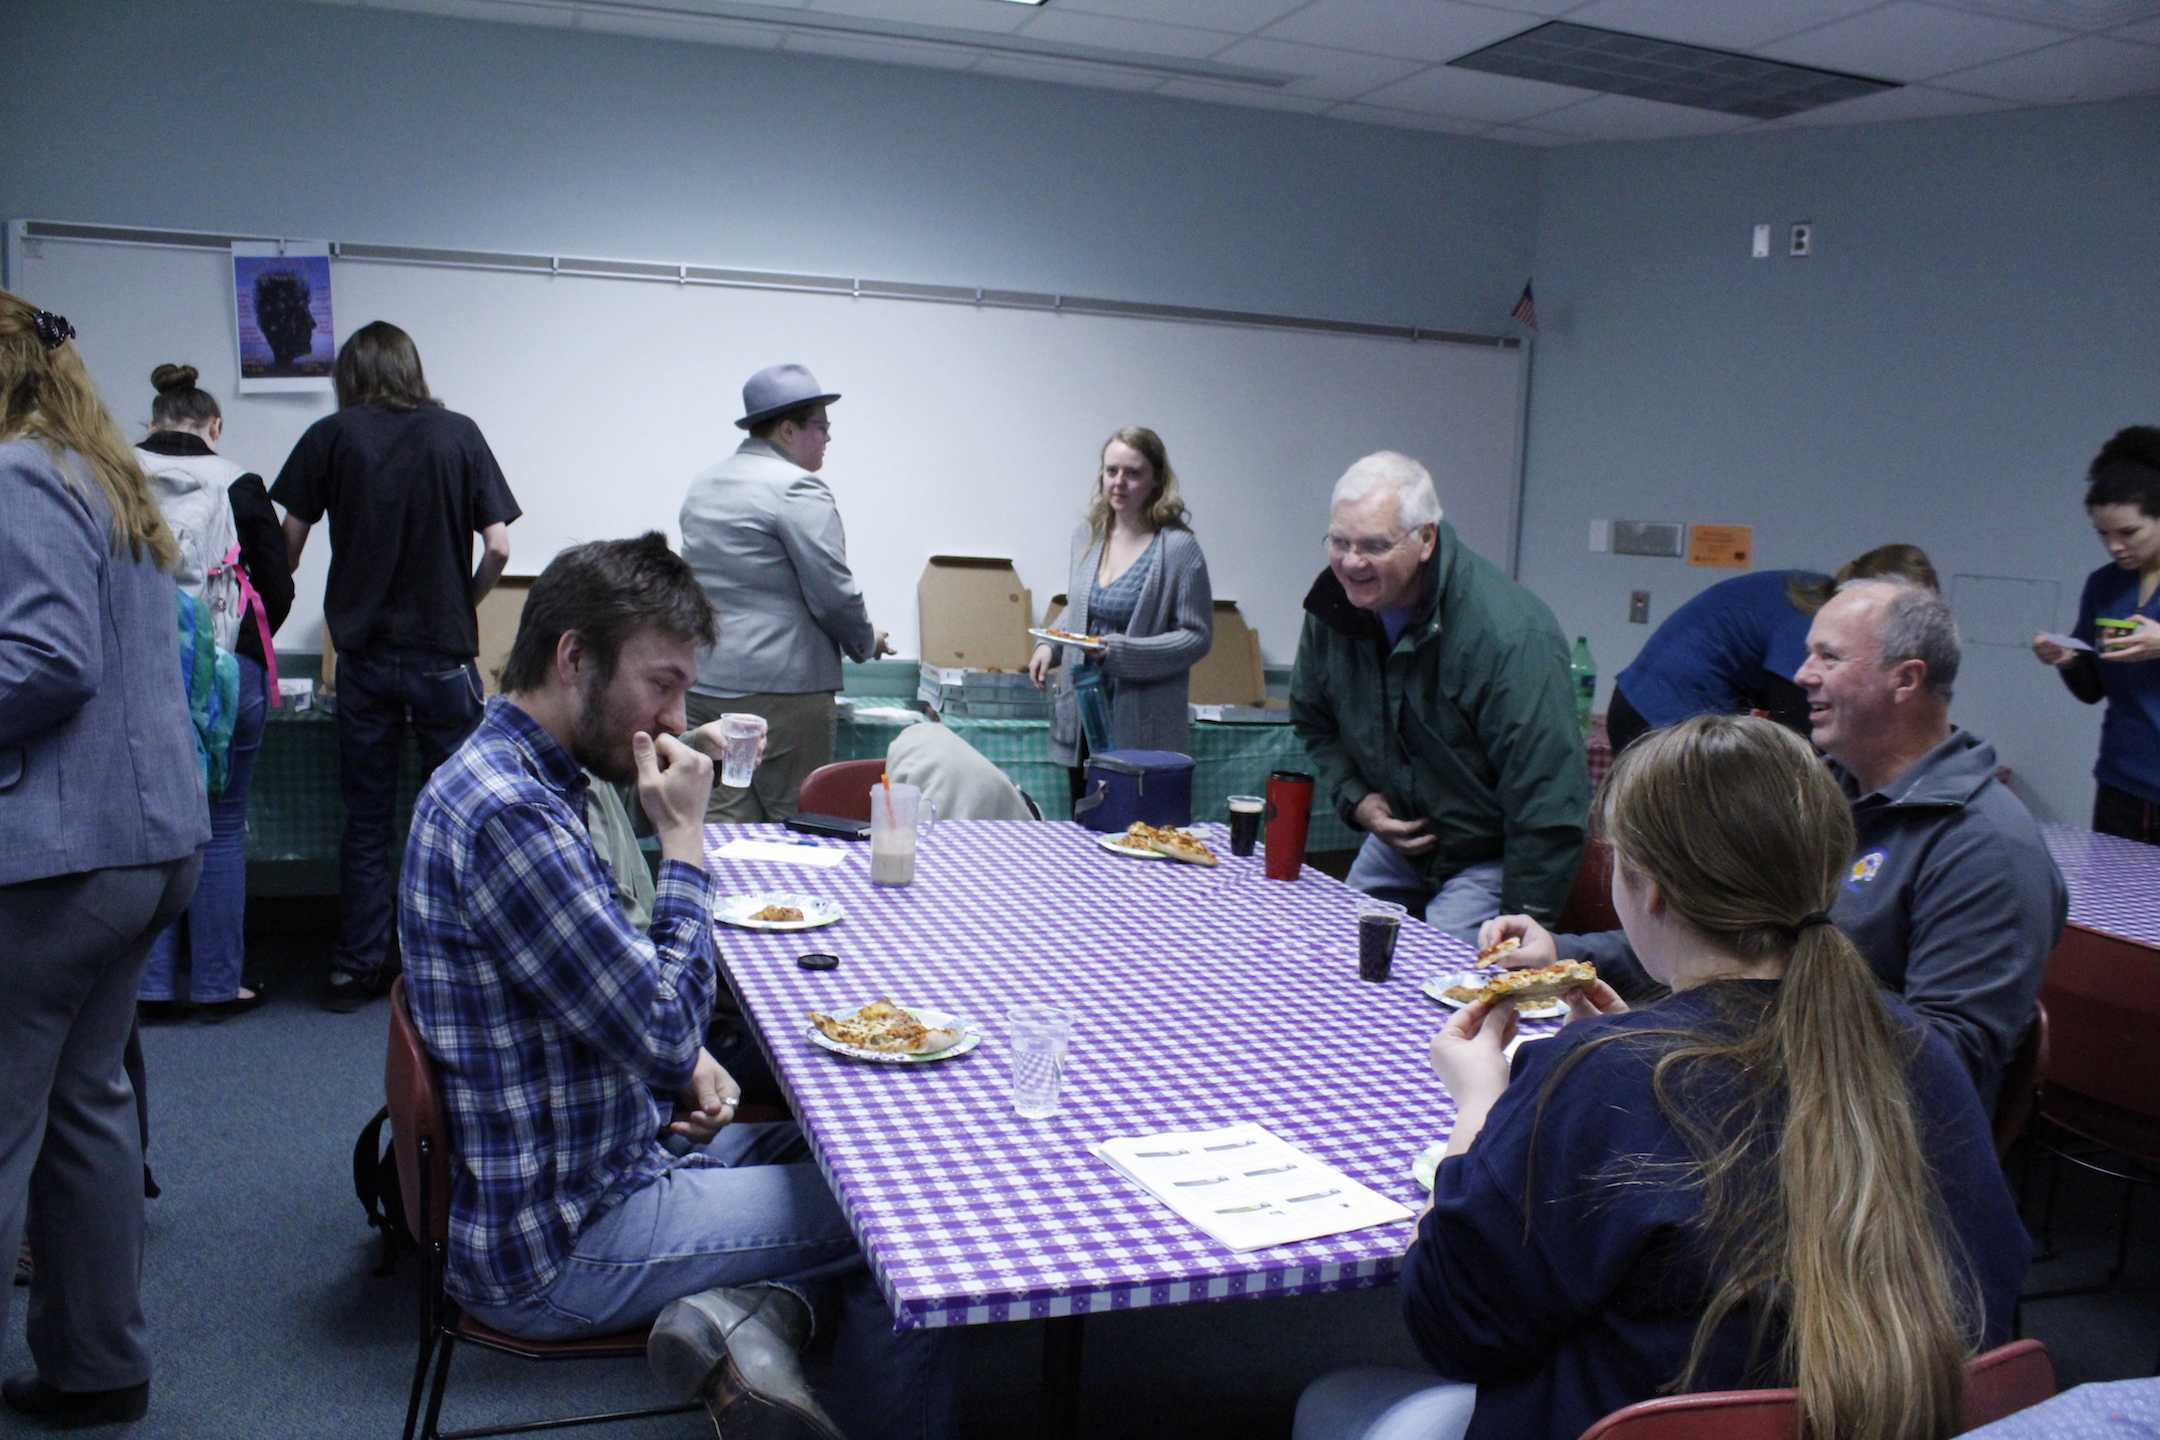 ARCC's Top Administrator Gives Pizza and Takes Questions